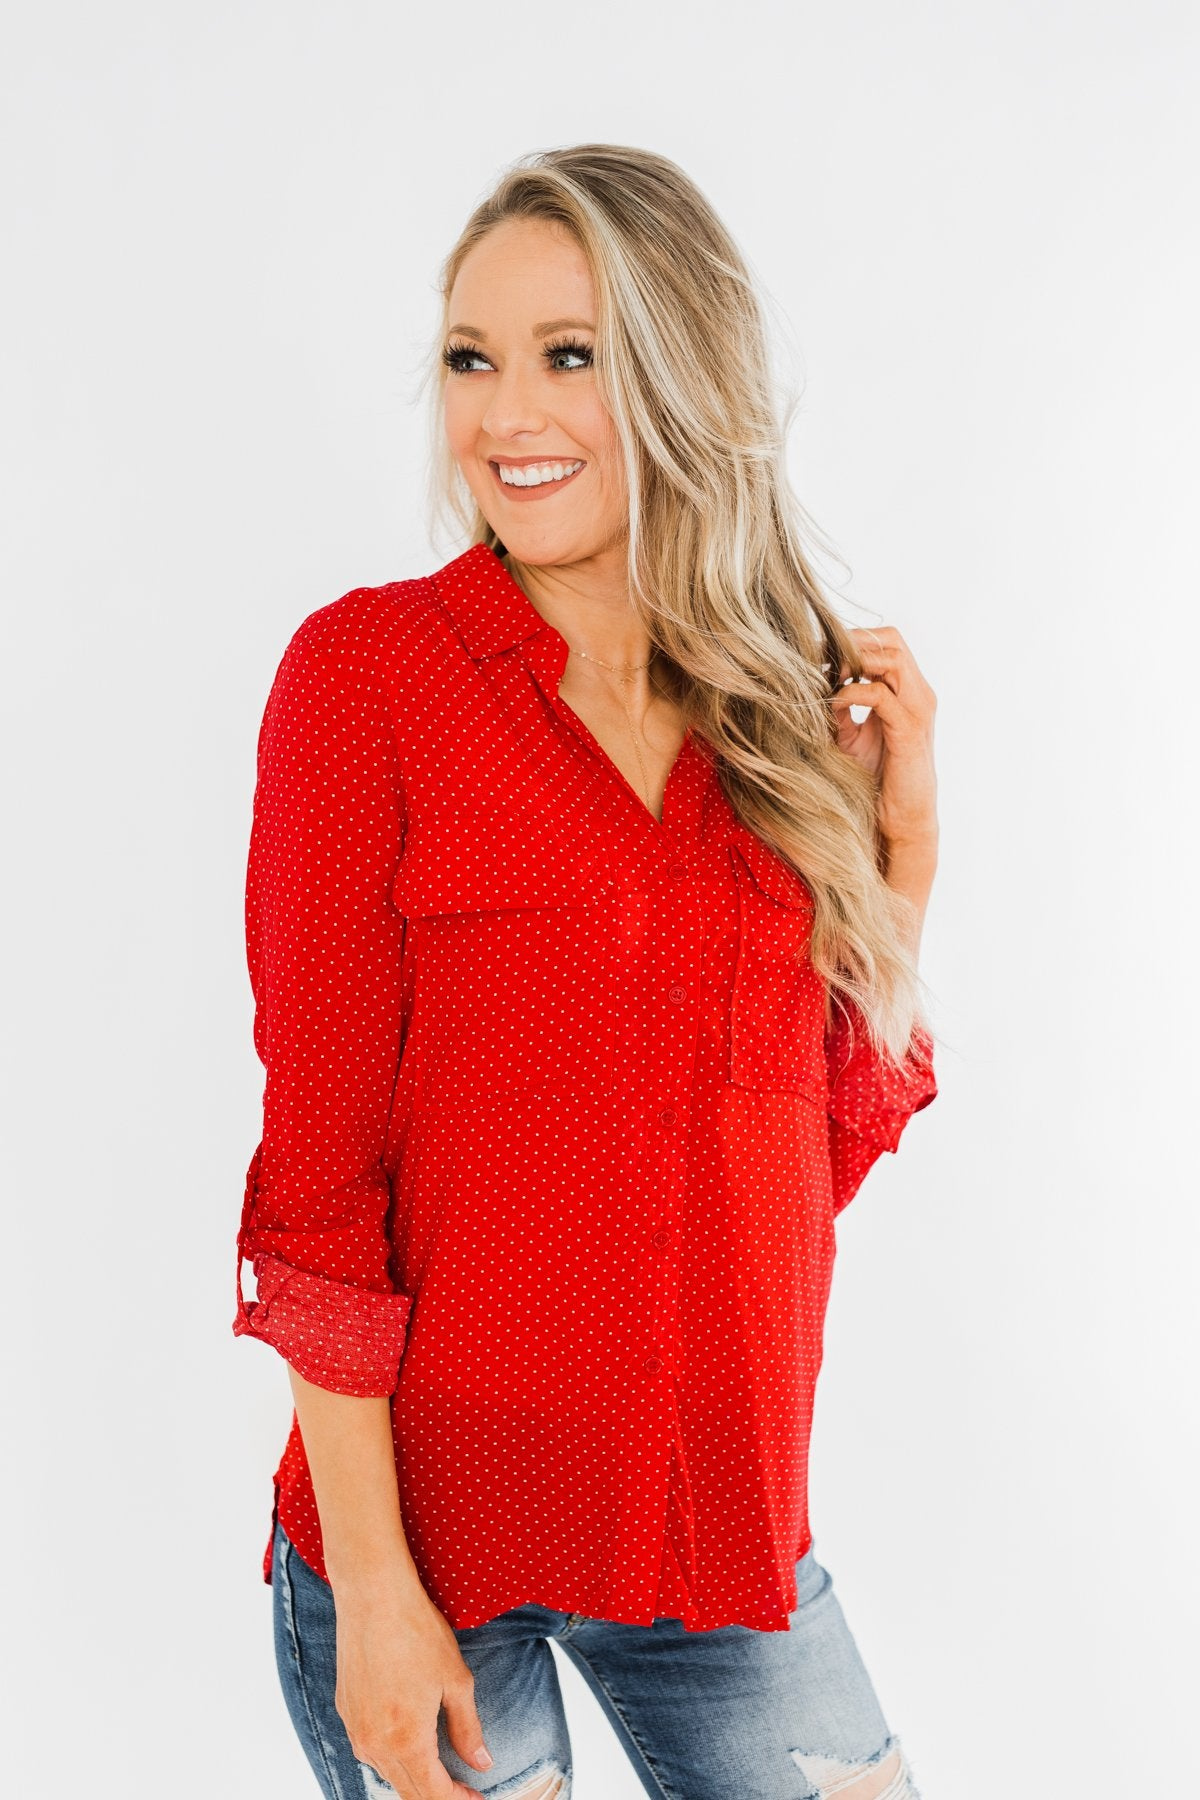 Perfect For Me Polka Dot Blouse- Lipstick Red